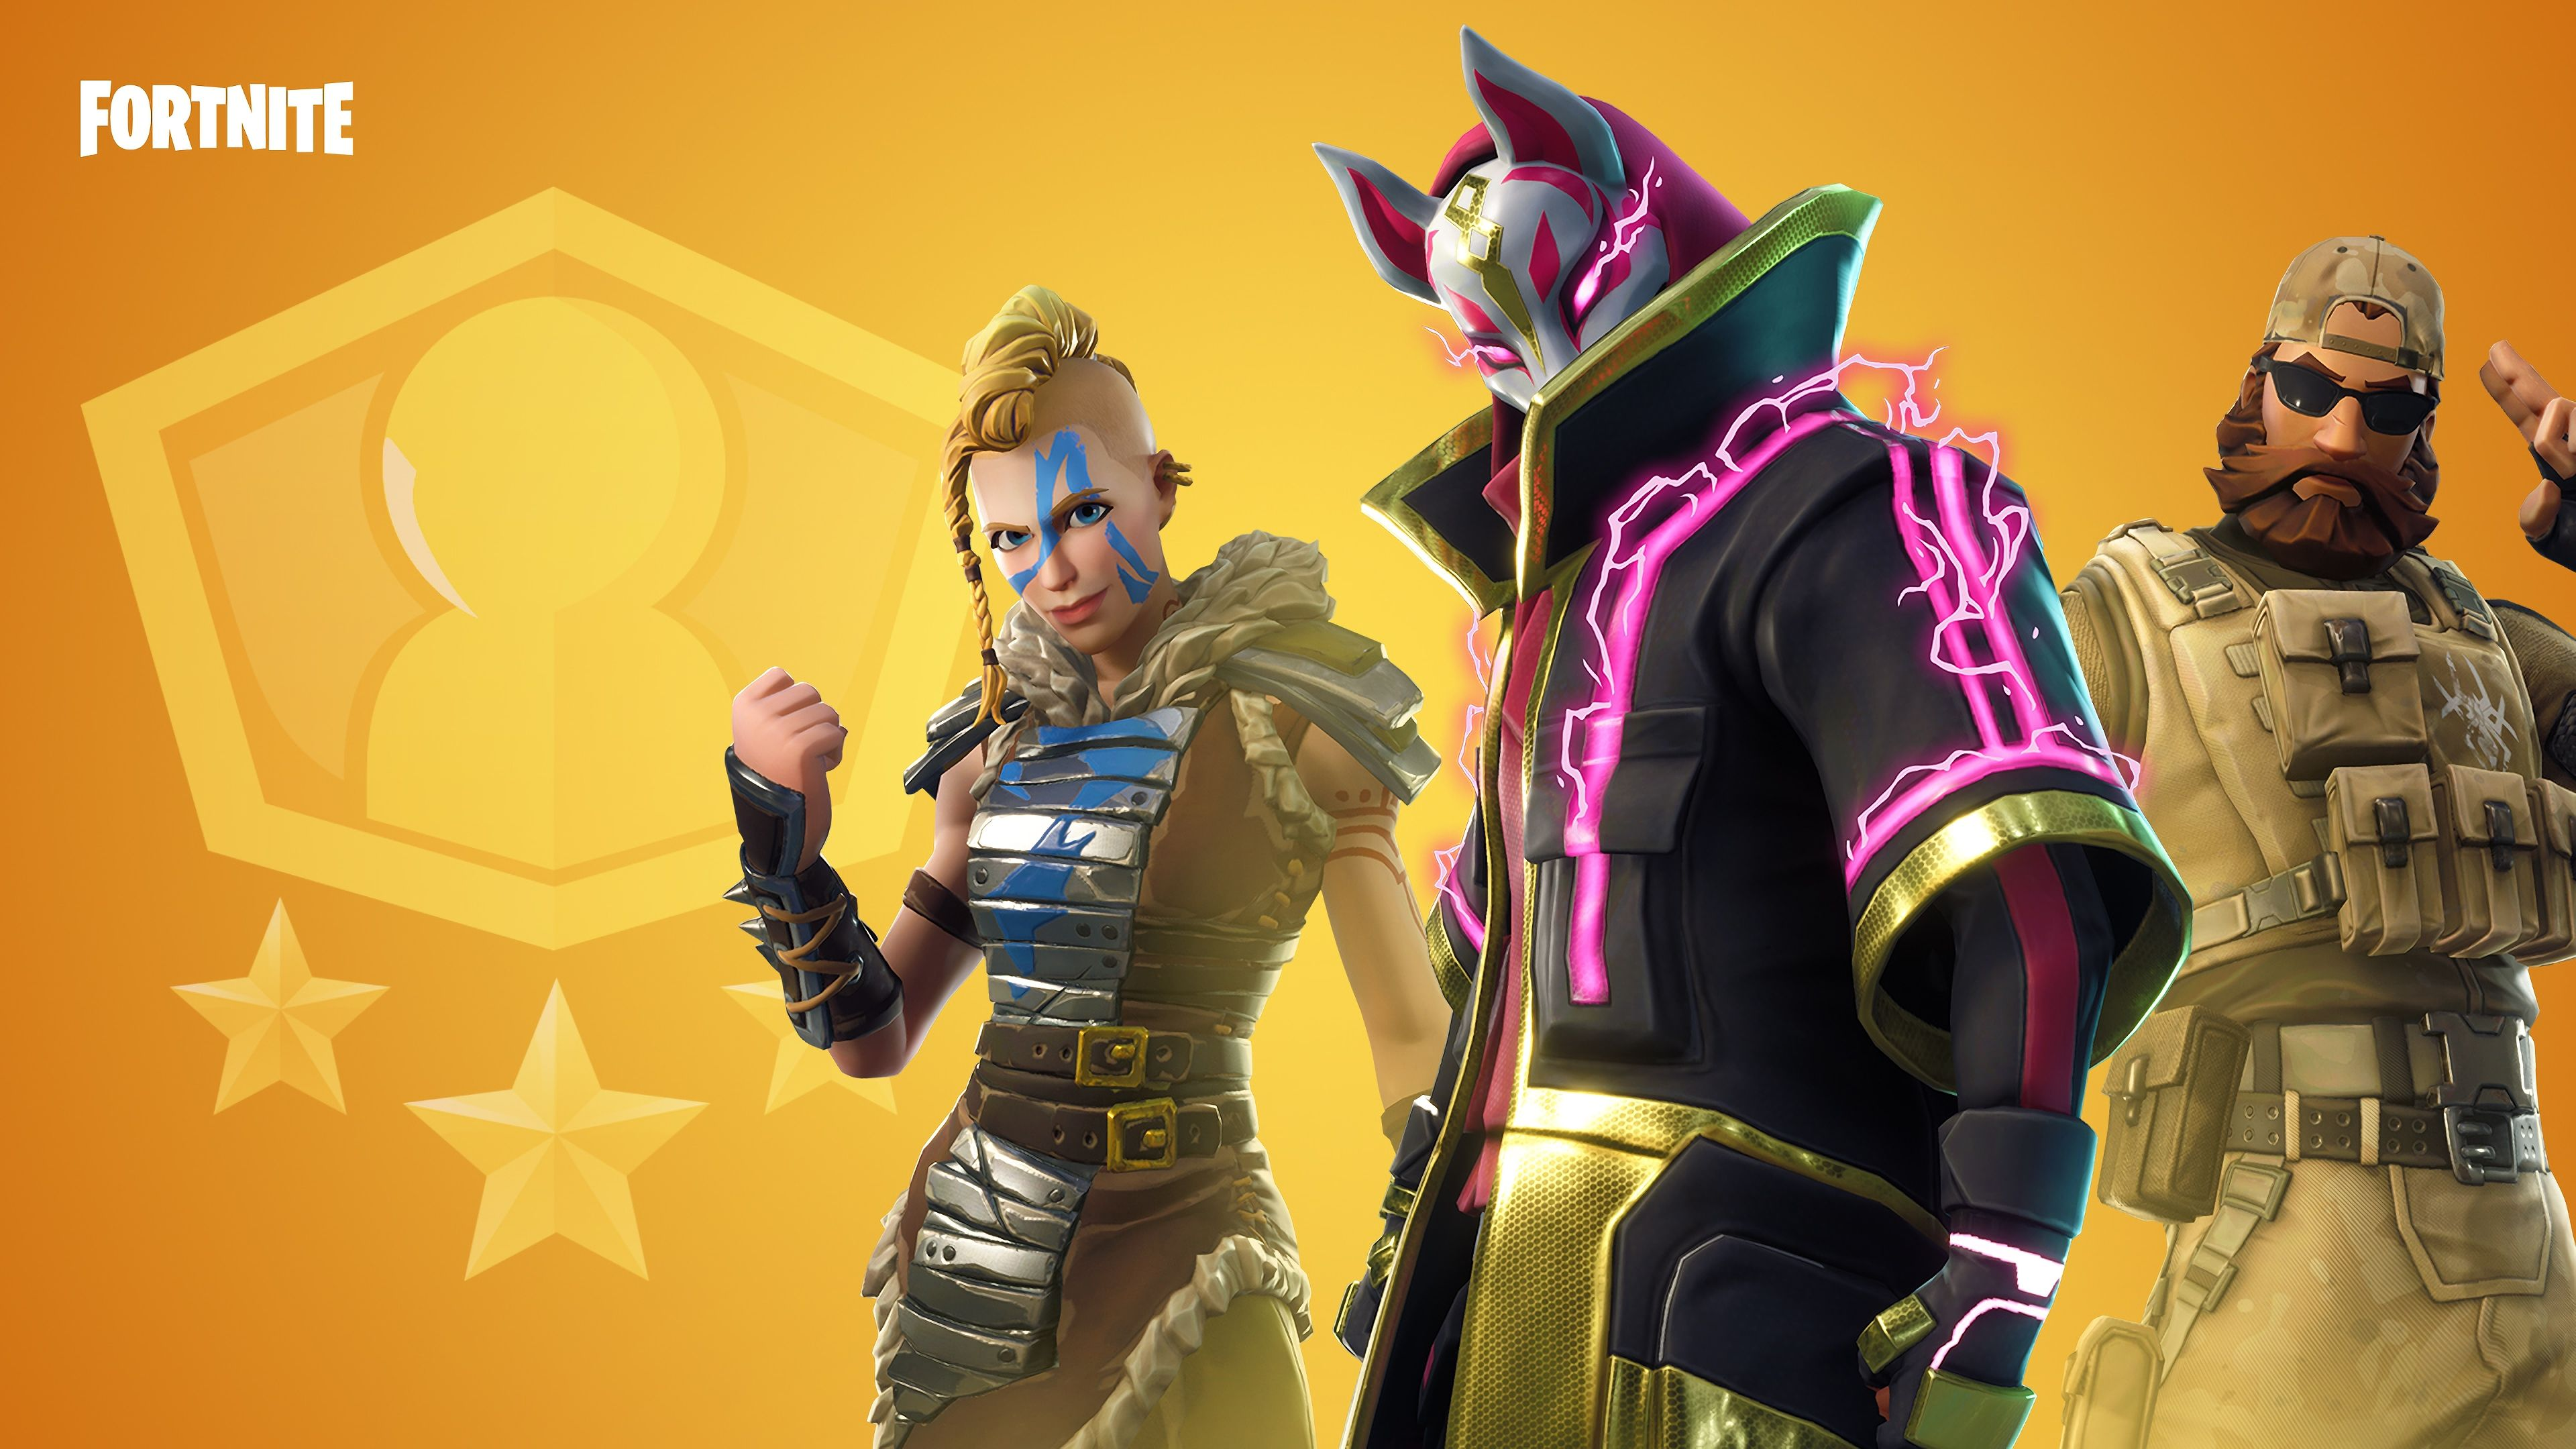 Pin On Fortnite Amazing Wallpapers